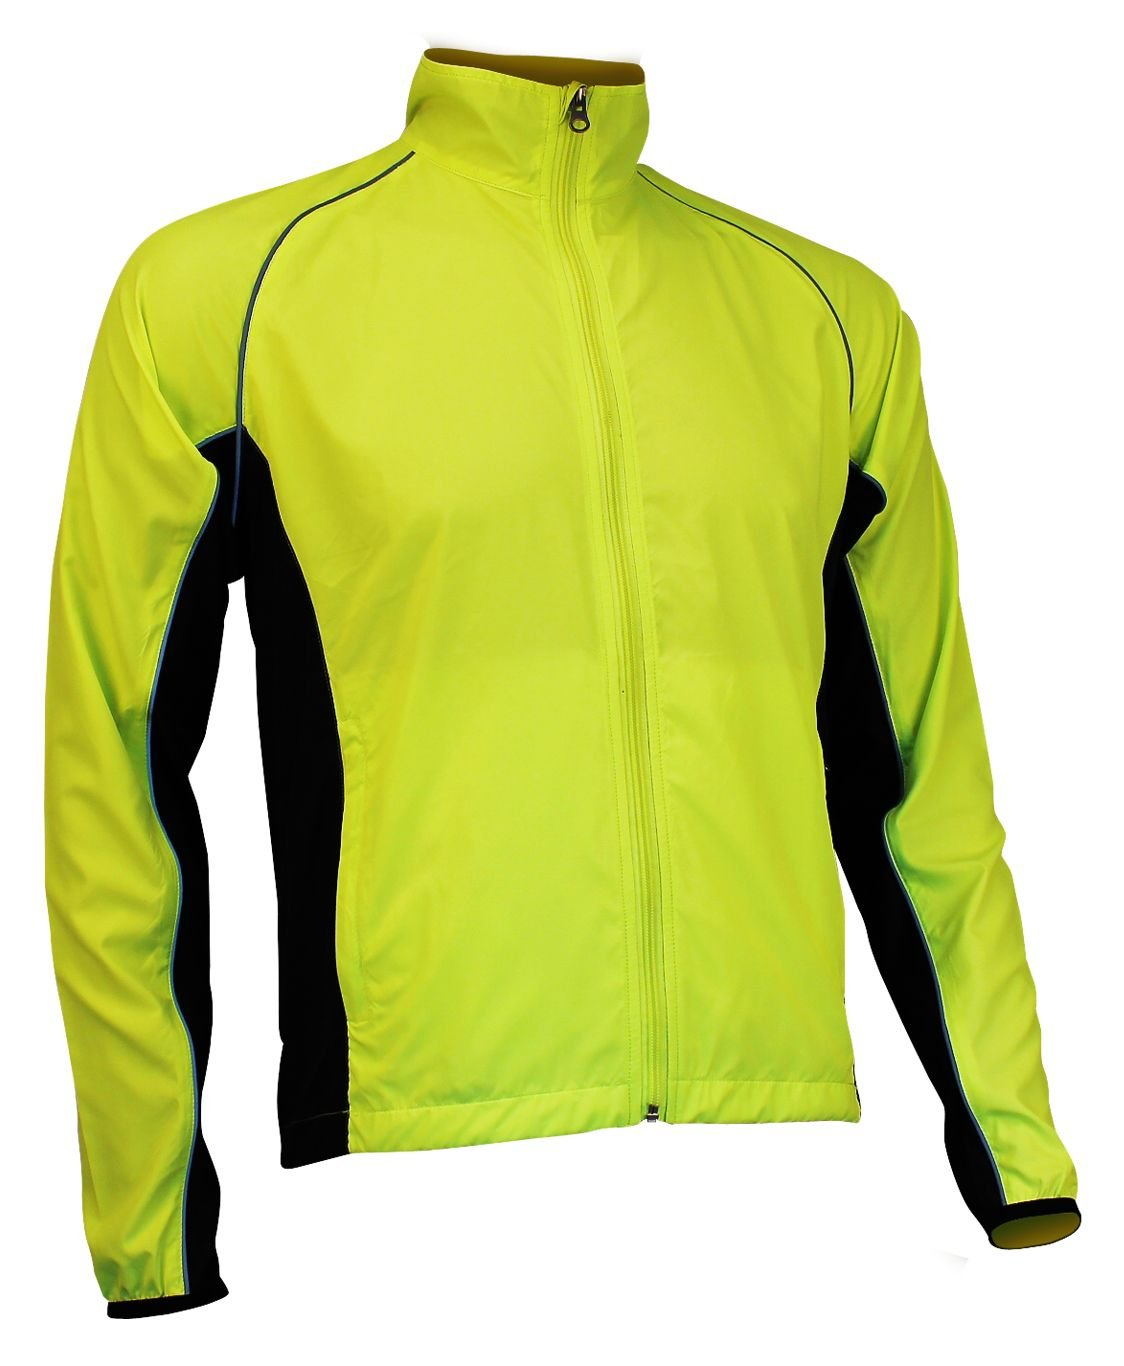 Avento Boys' 74pz Running Jacket Schreuders Sports